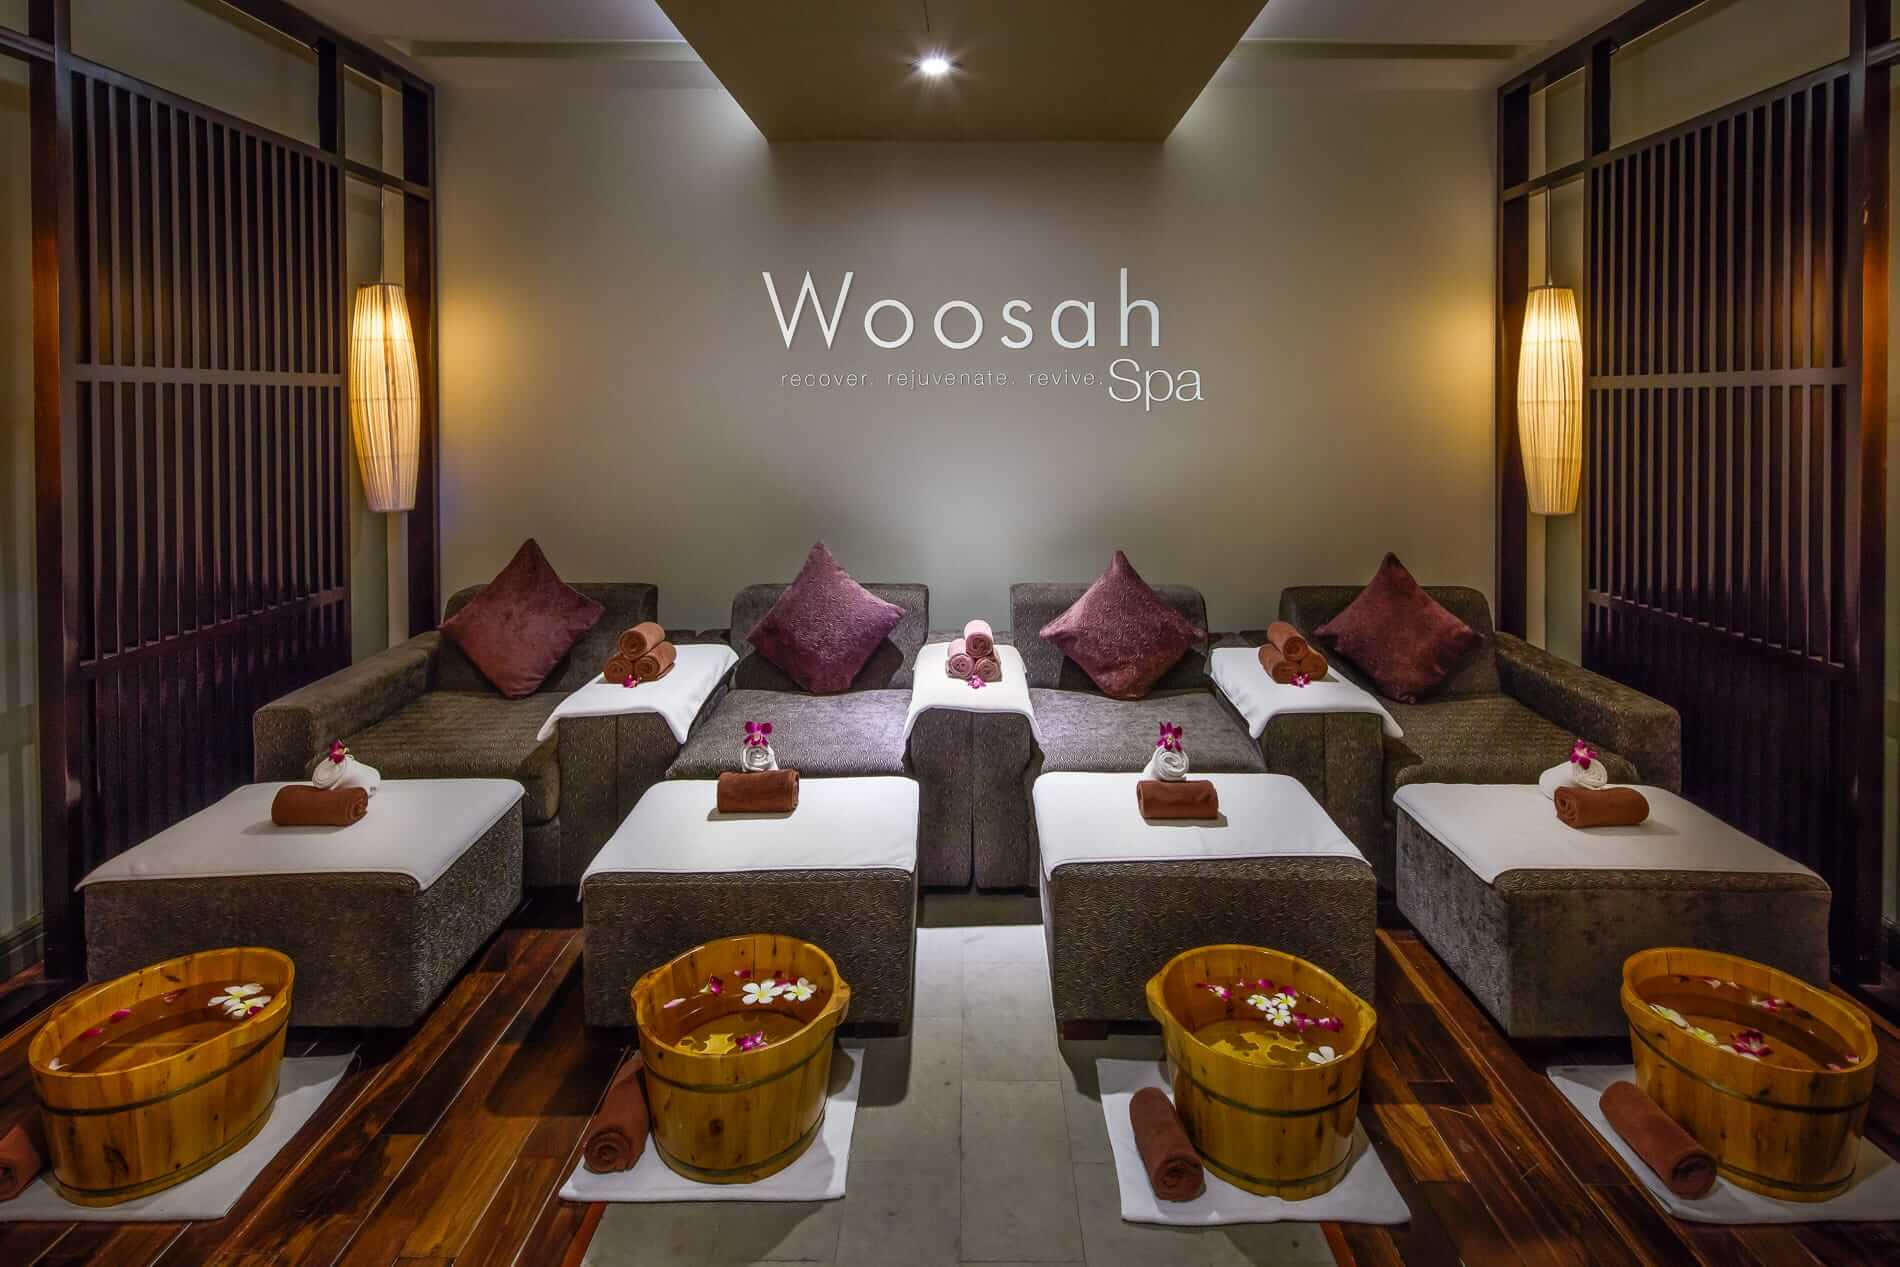 A treatment room at Woosah Spa